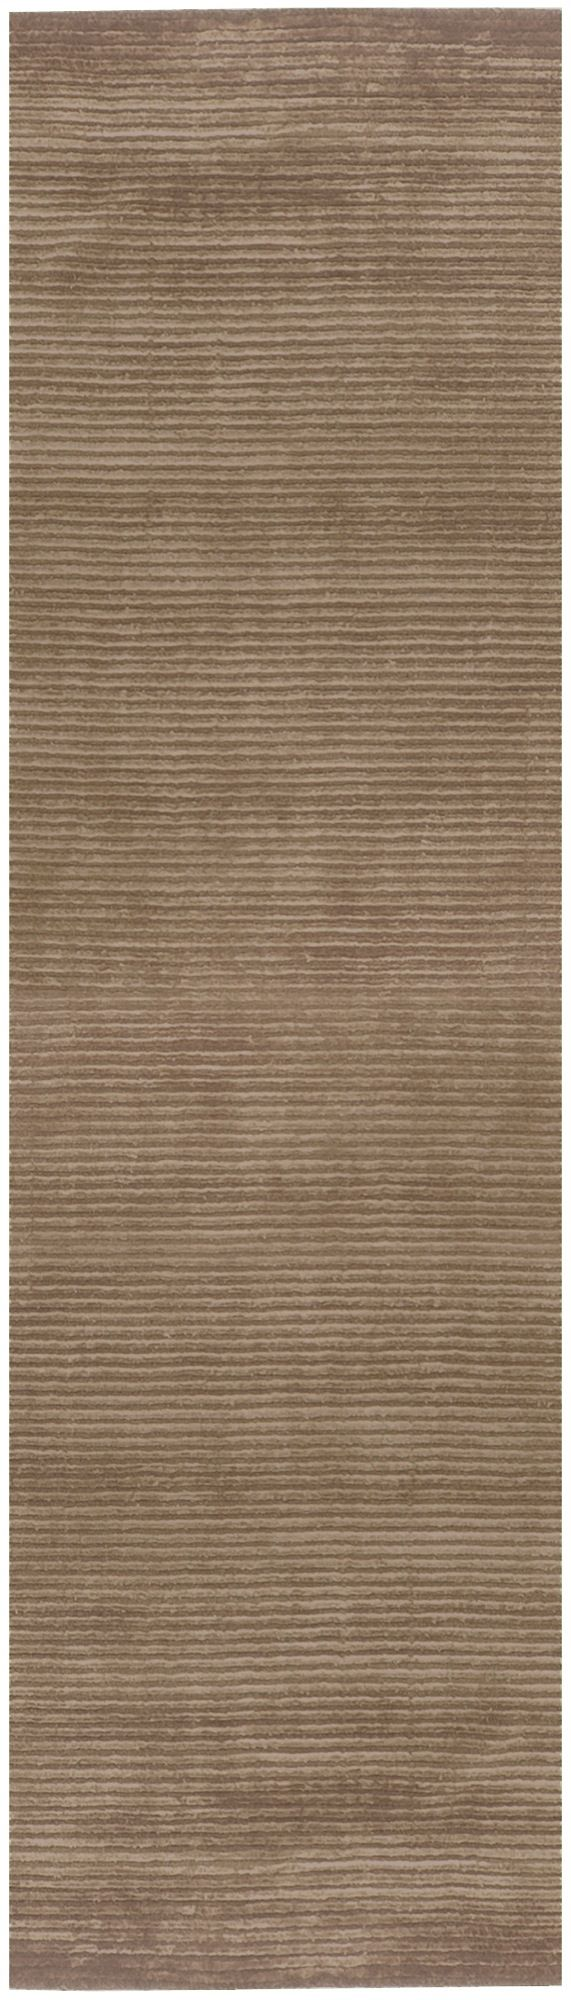 surya spectrum solid/striped area rug collection